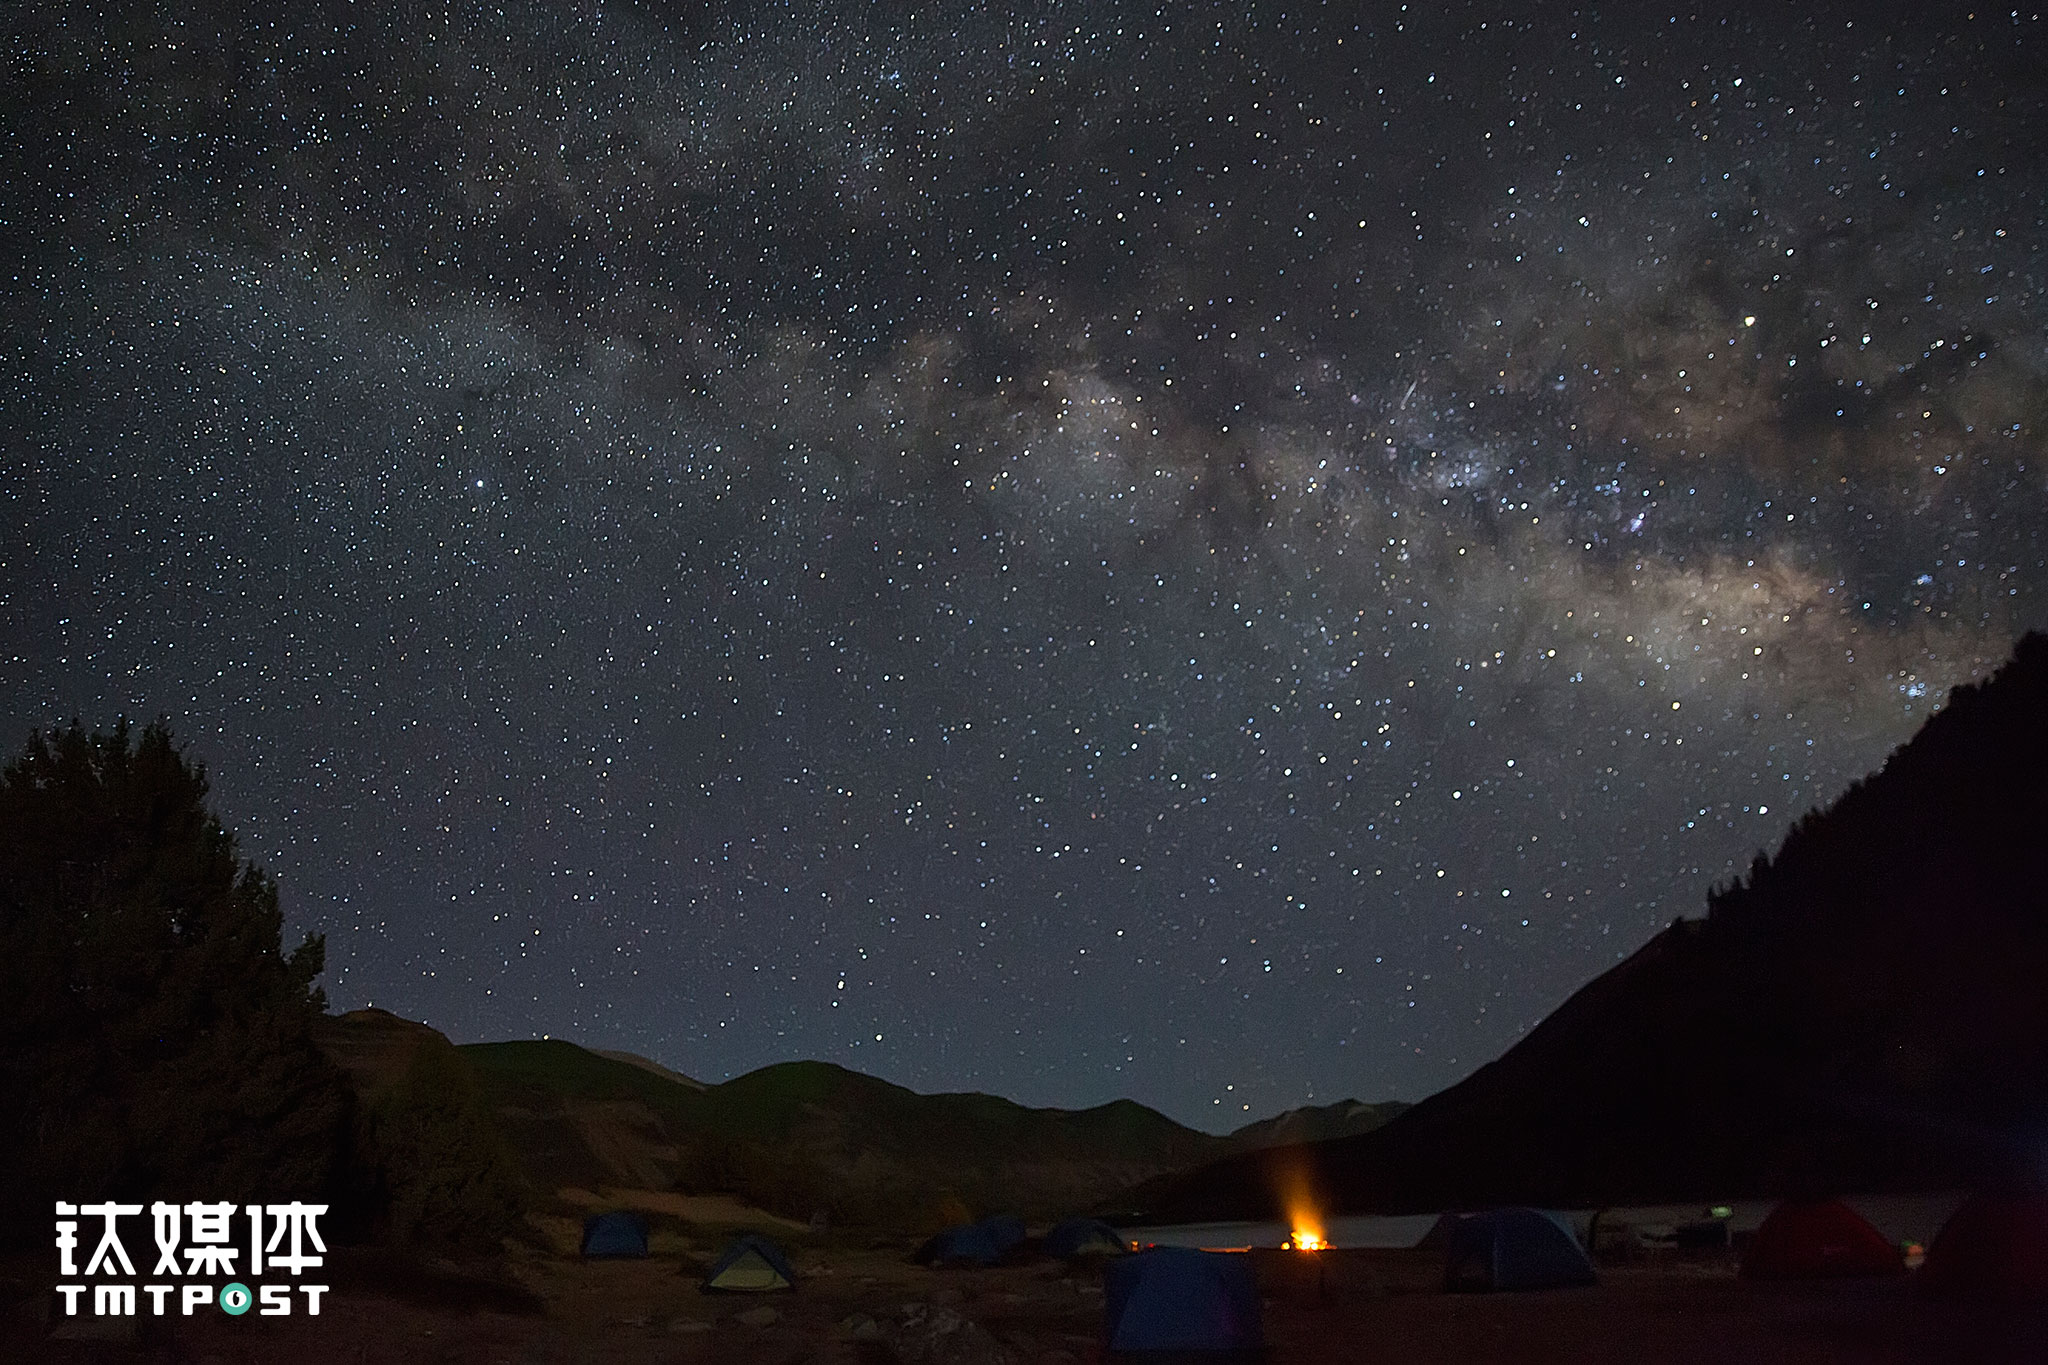 The milky way was shining above the camp in a tranquil night.